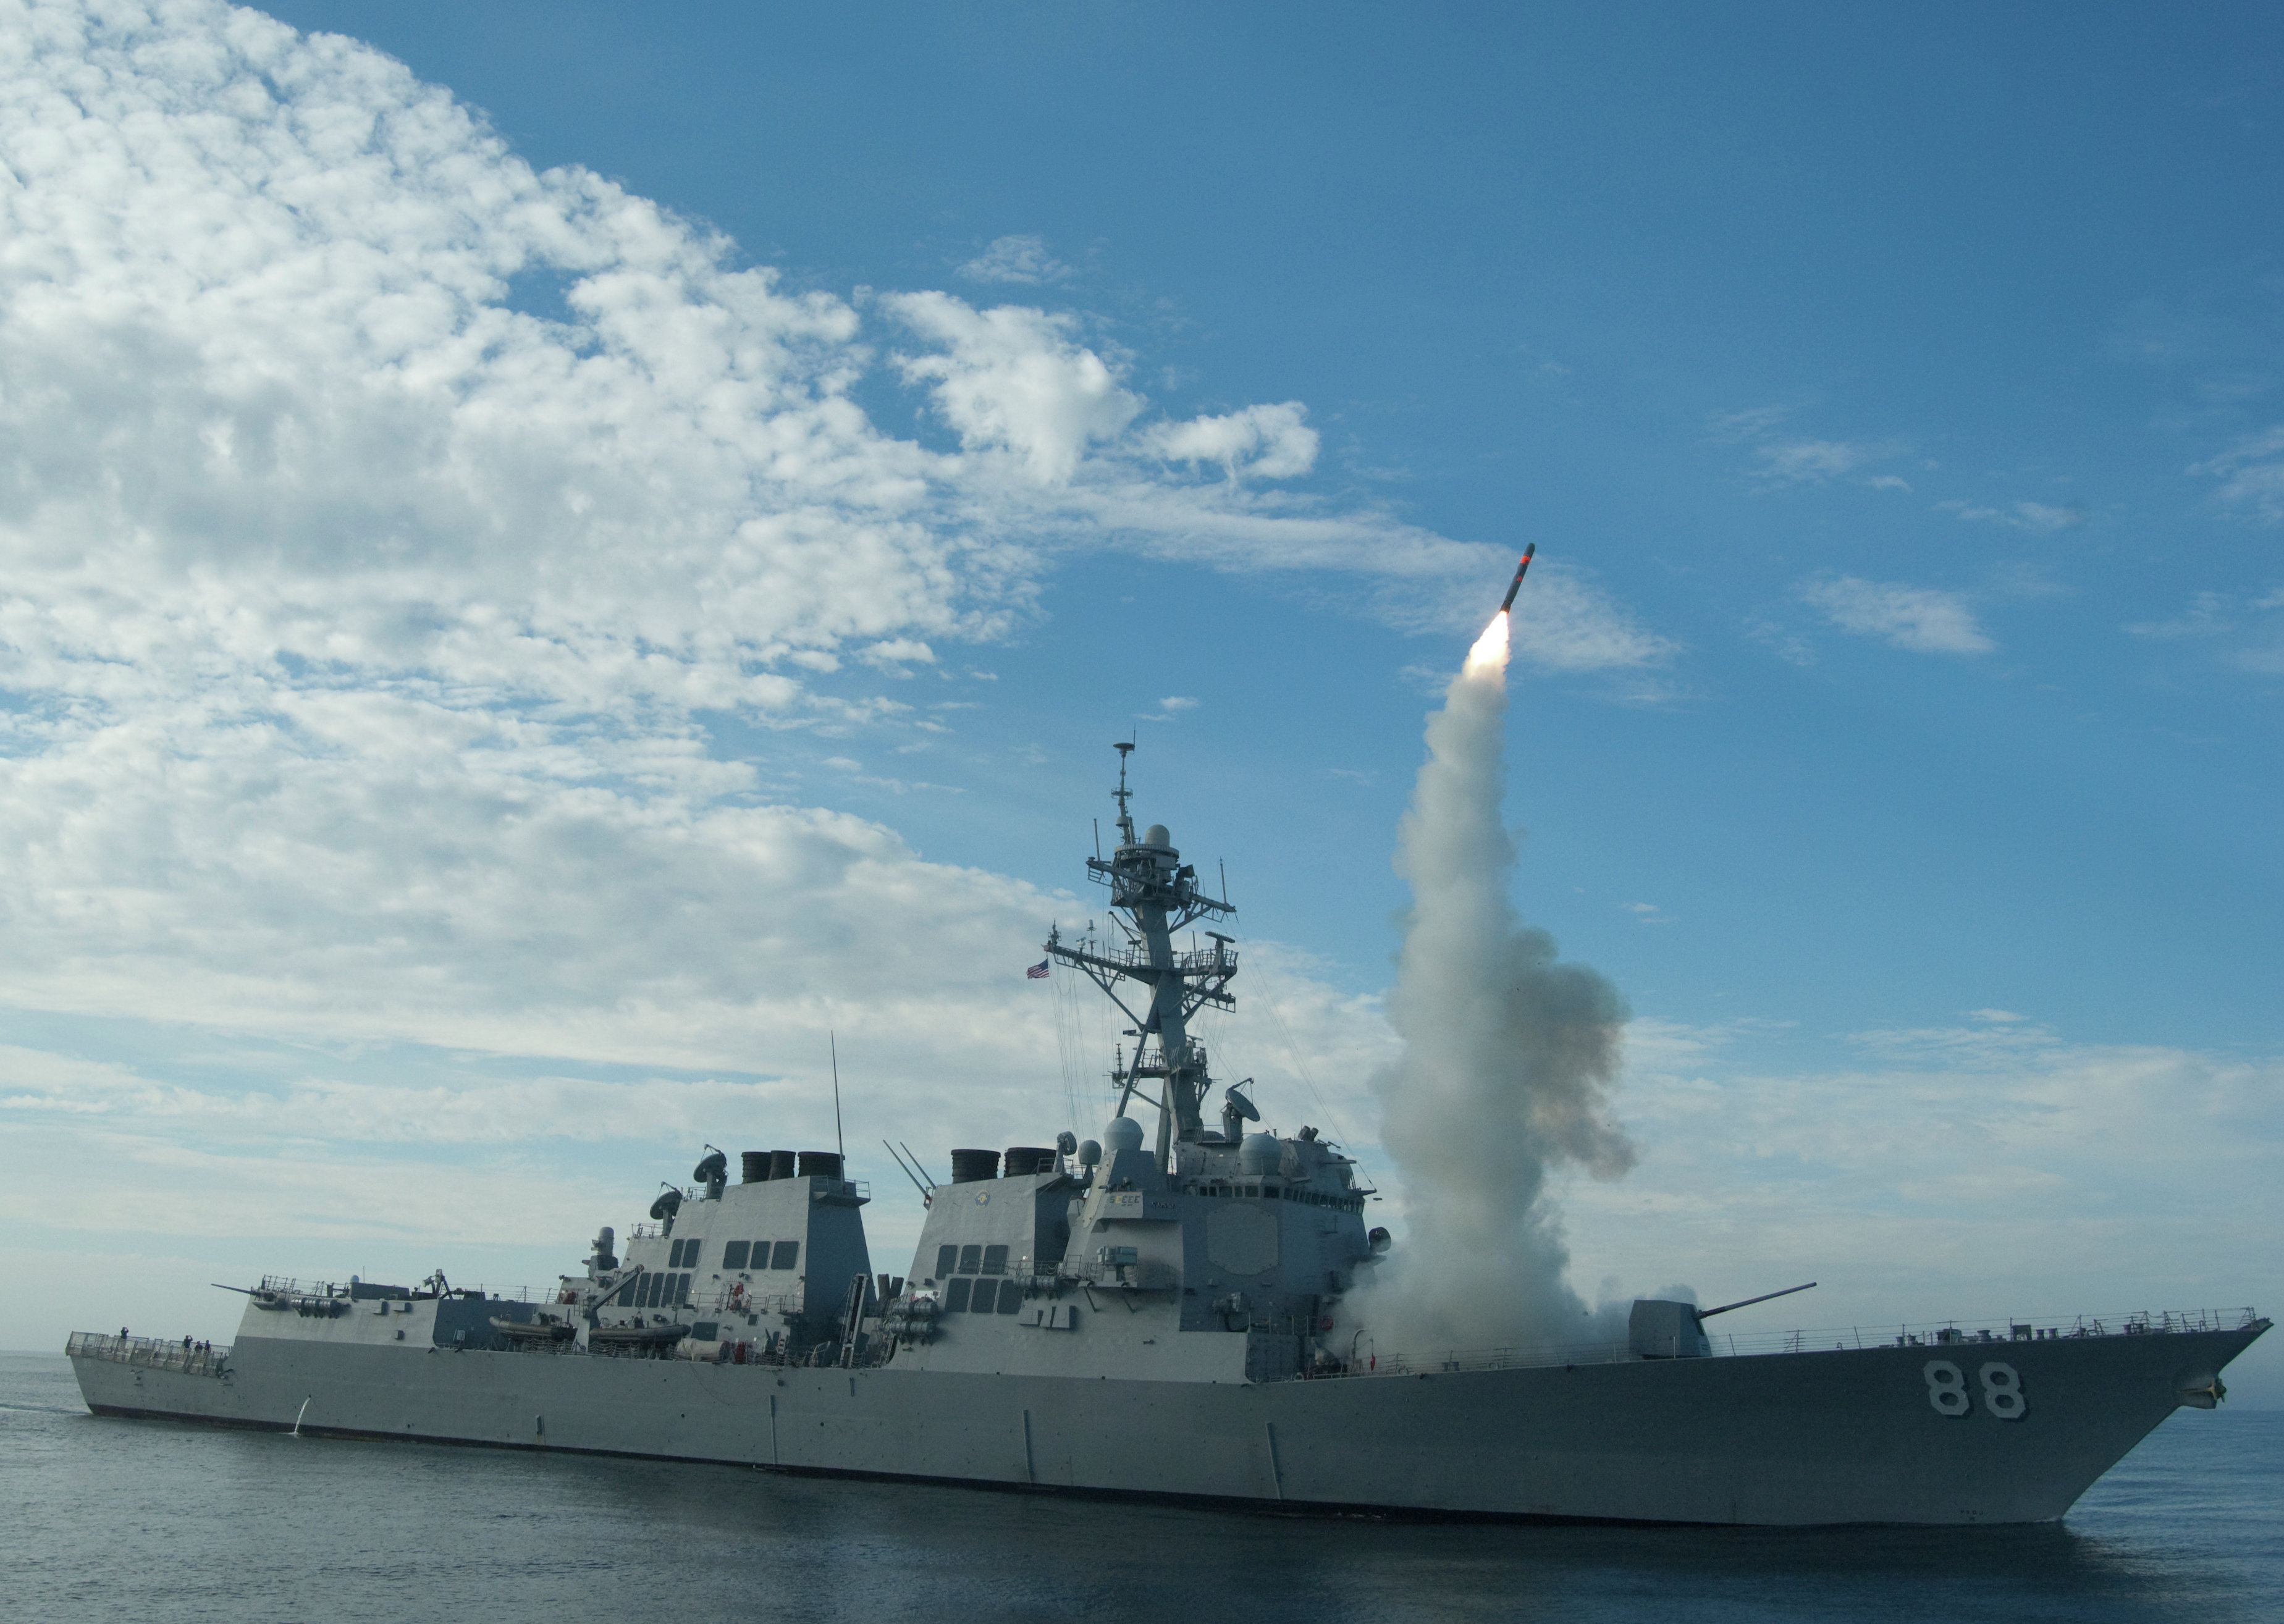 Sailors aboard the guided-missile destroyer USS Preble (DDG 88) conduct an operational Tomahawk missile launch